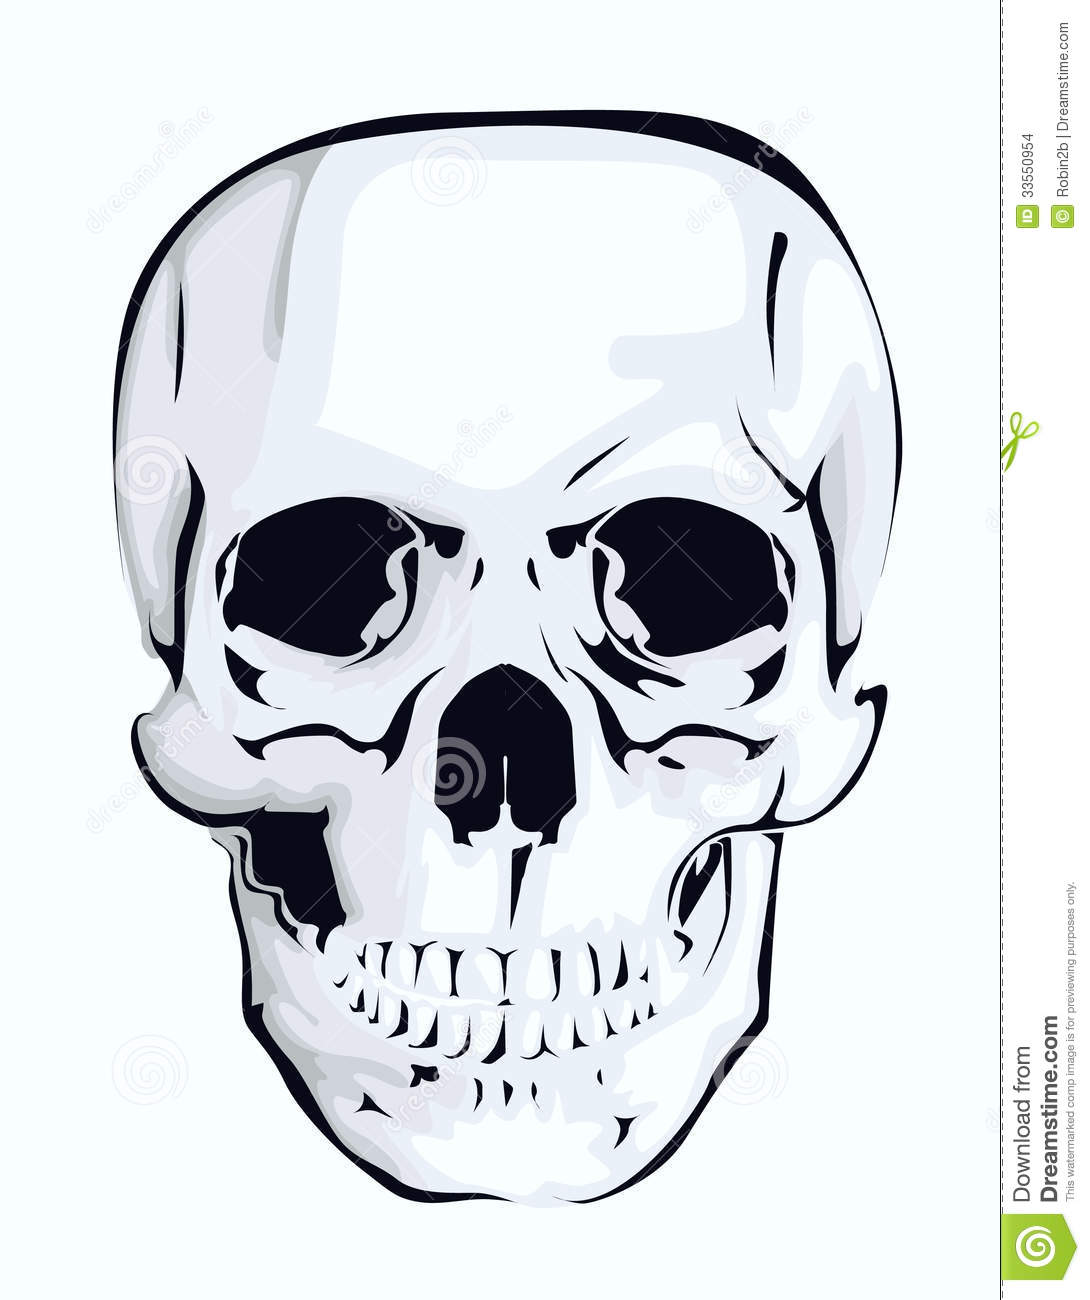 Abstract Skull Stock Images - Image: 33550954